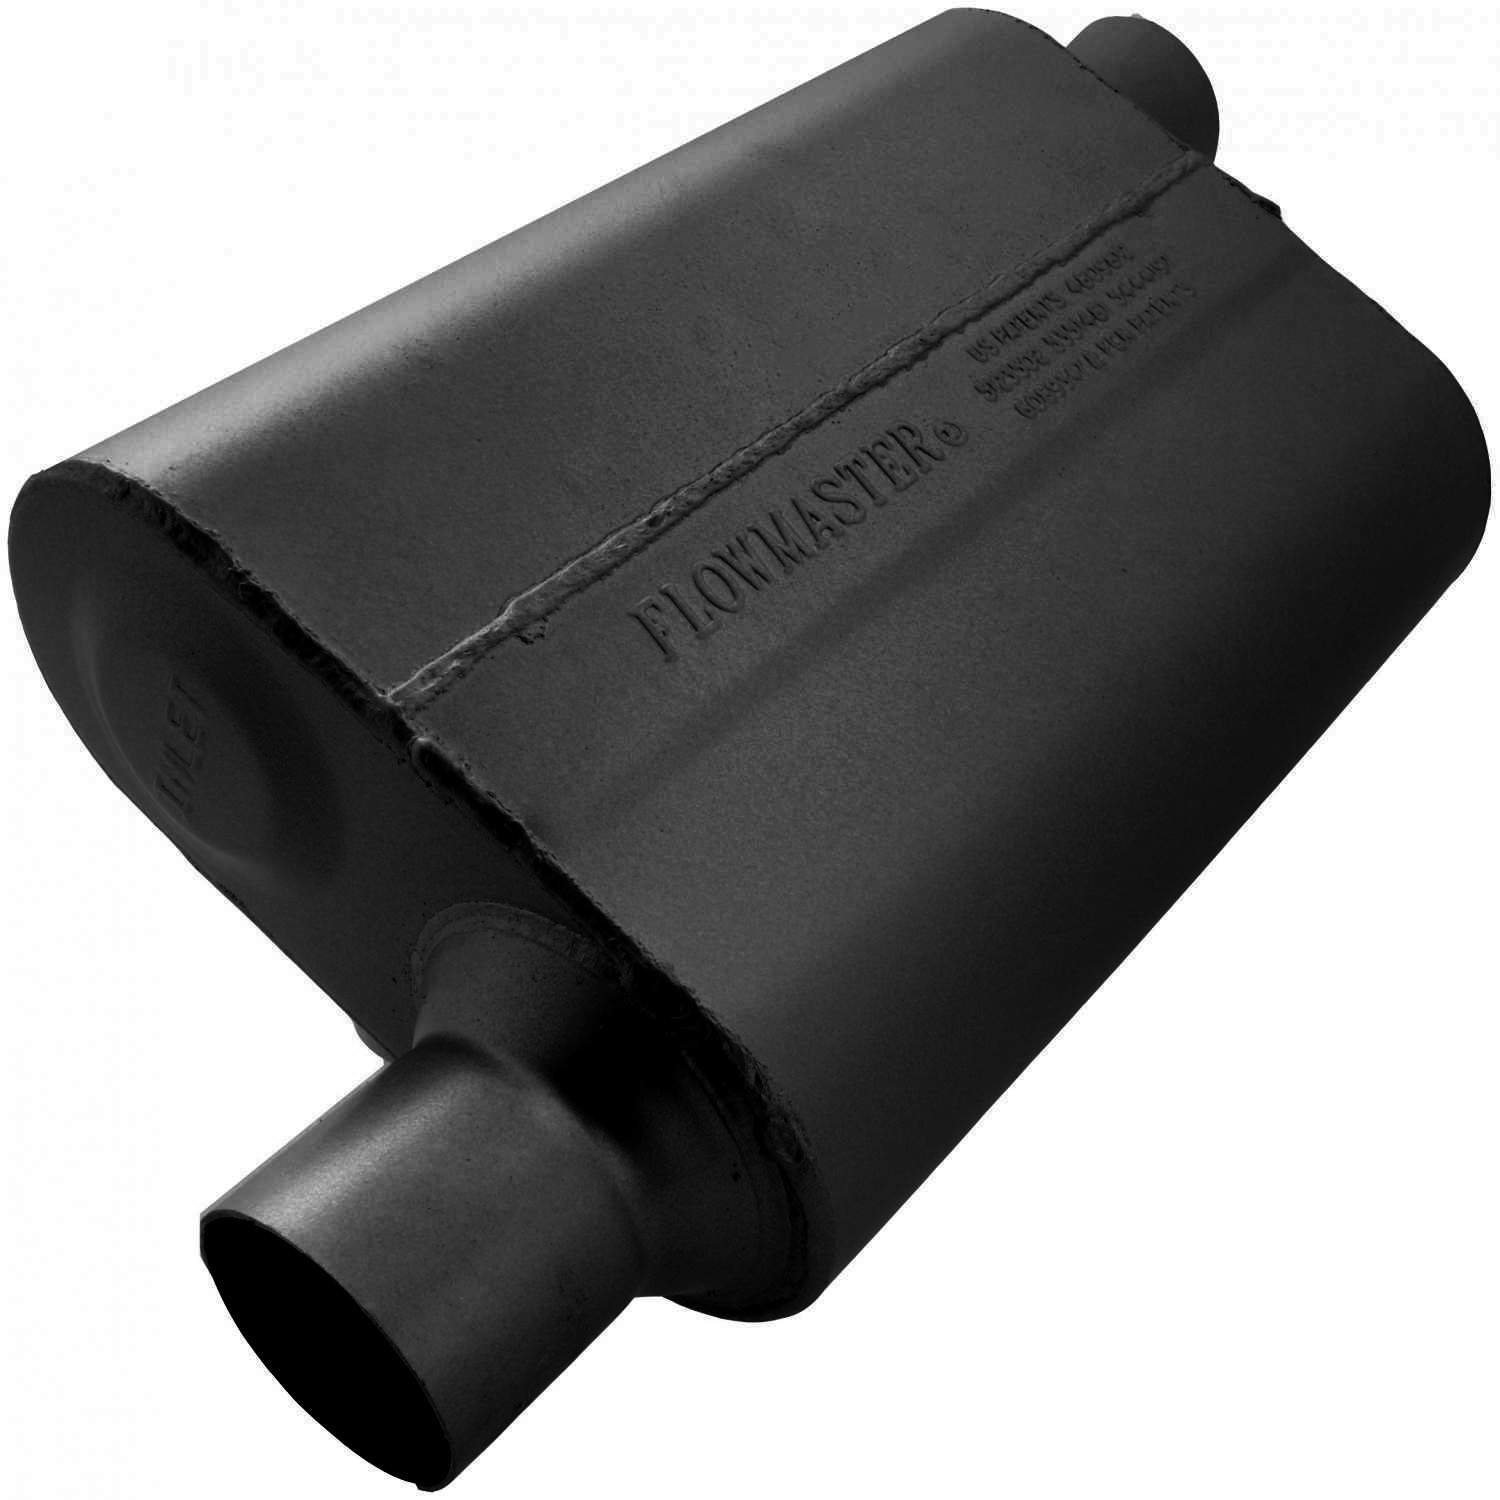 Flowmaster 40 Delta Flow Muffler - 2.50 Offset In / 2.50 Offset Out - Aggressive Sound 942543